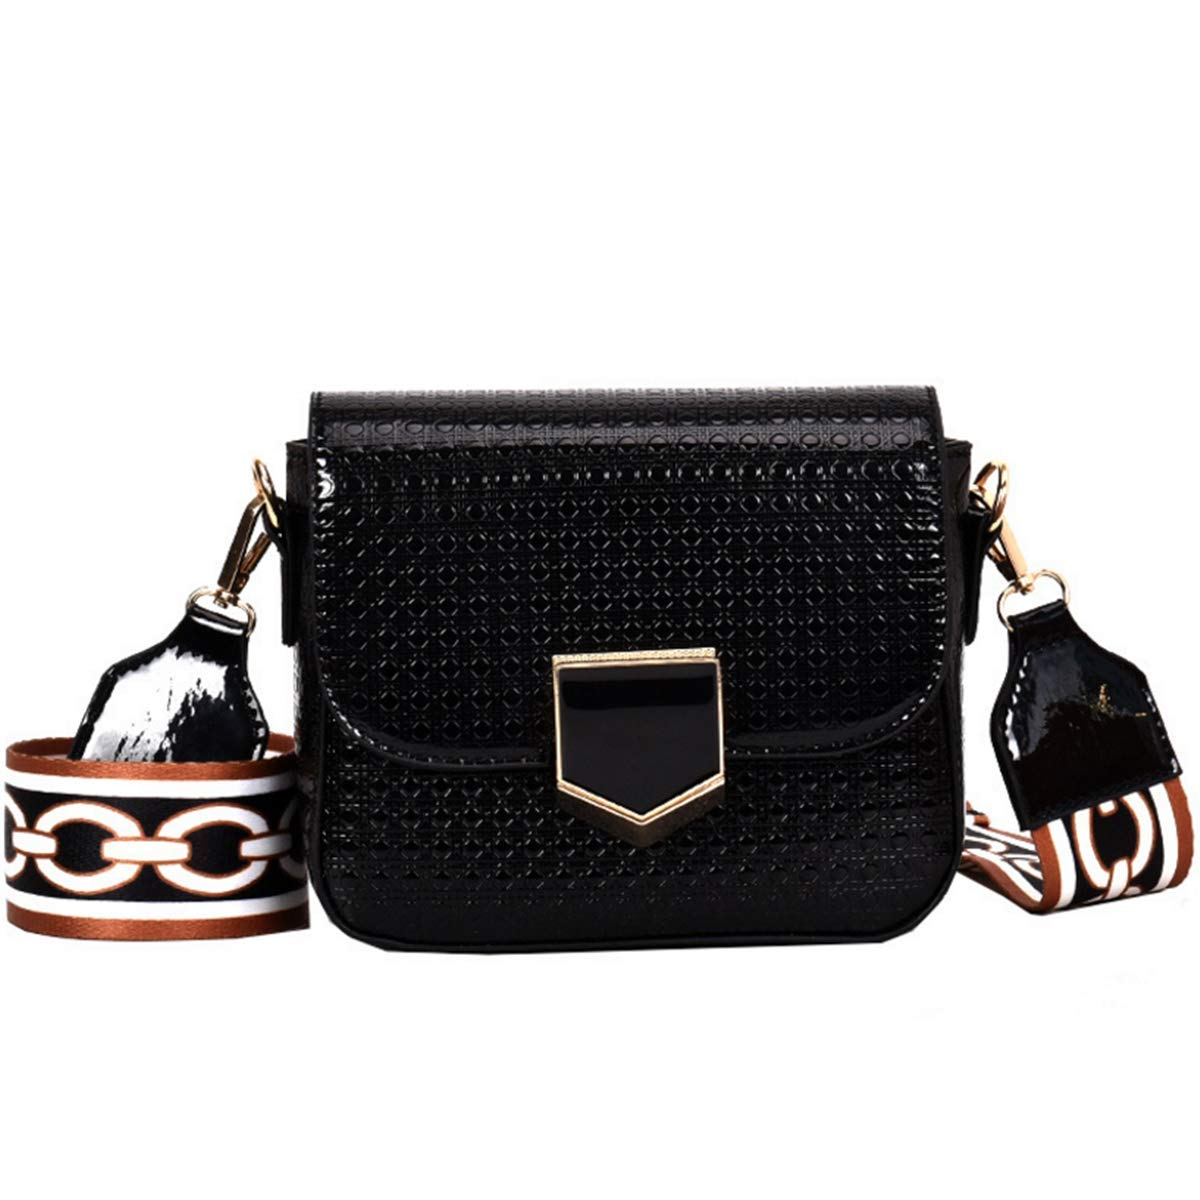 MM&SS SHOP Patent Leather Crossbody Purse For Women,Satchel Purse With Wide Strap Hang Out Shoulder Bags(Black)